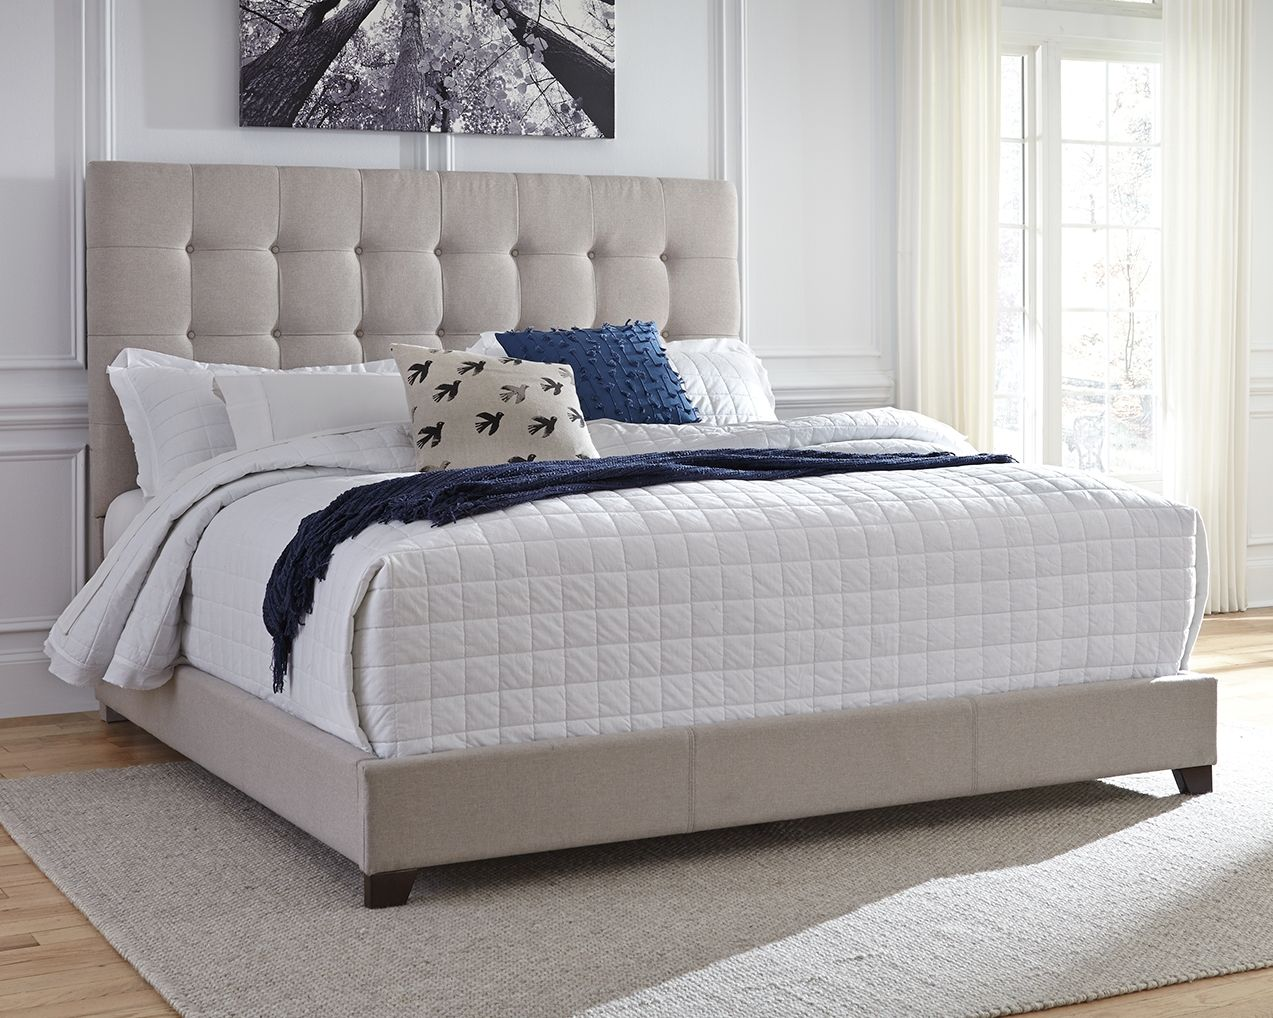 "Dolante Queen Upholstered Bed with 10"" Hybrid Mattress in"